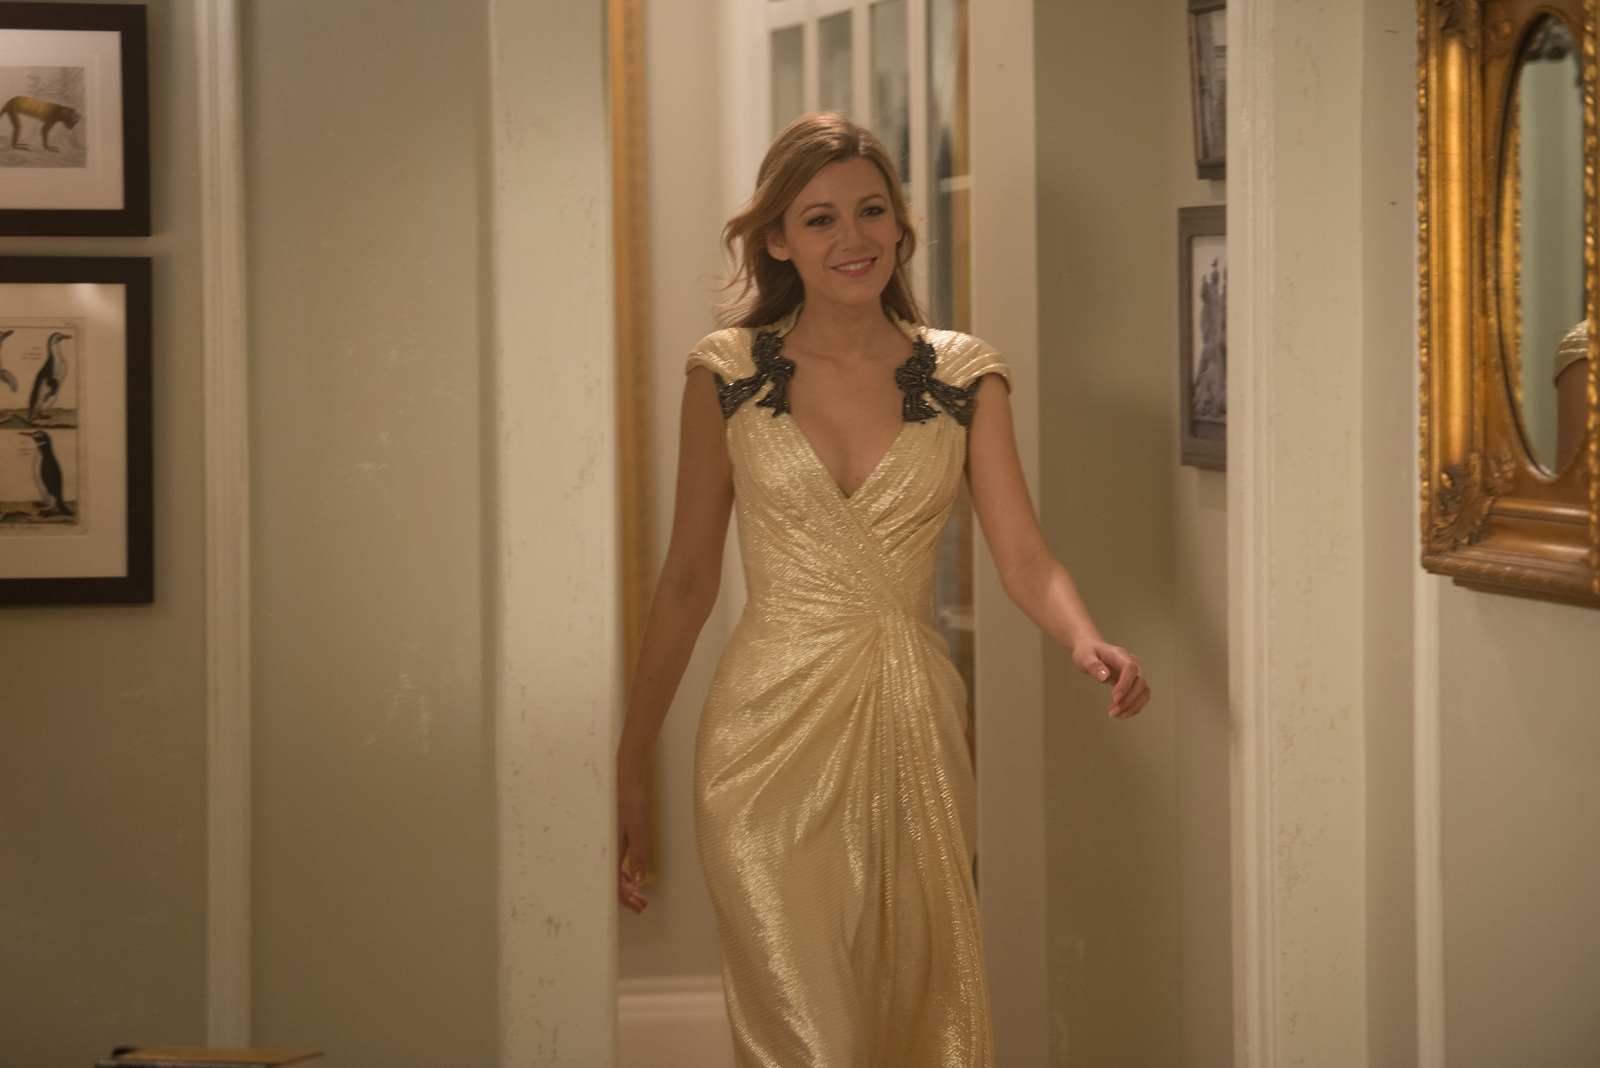 THE AGE OF ADALINE FLEXED MUSCLES AMID TOP PERFORMING